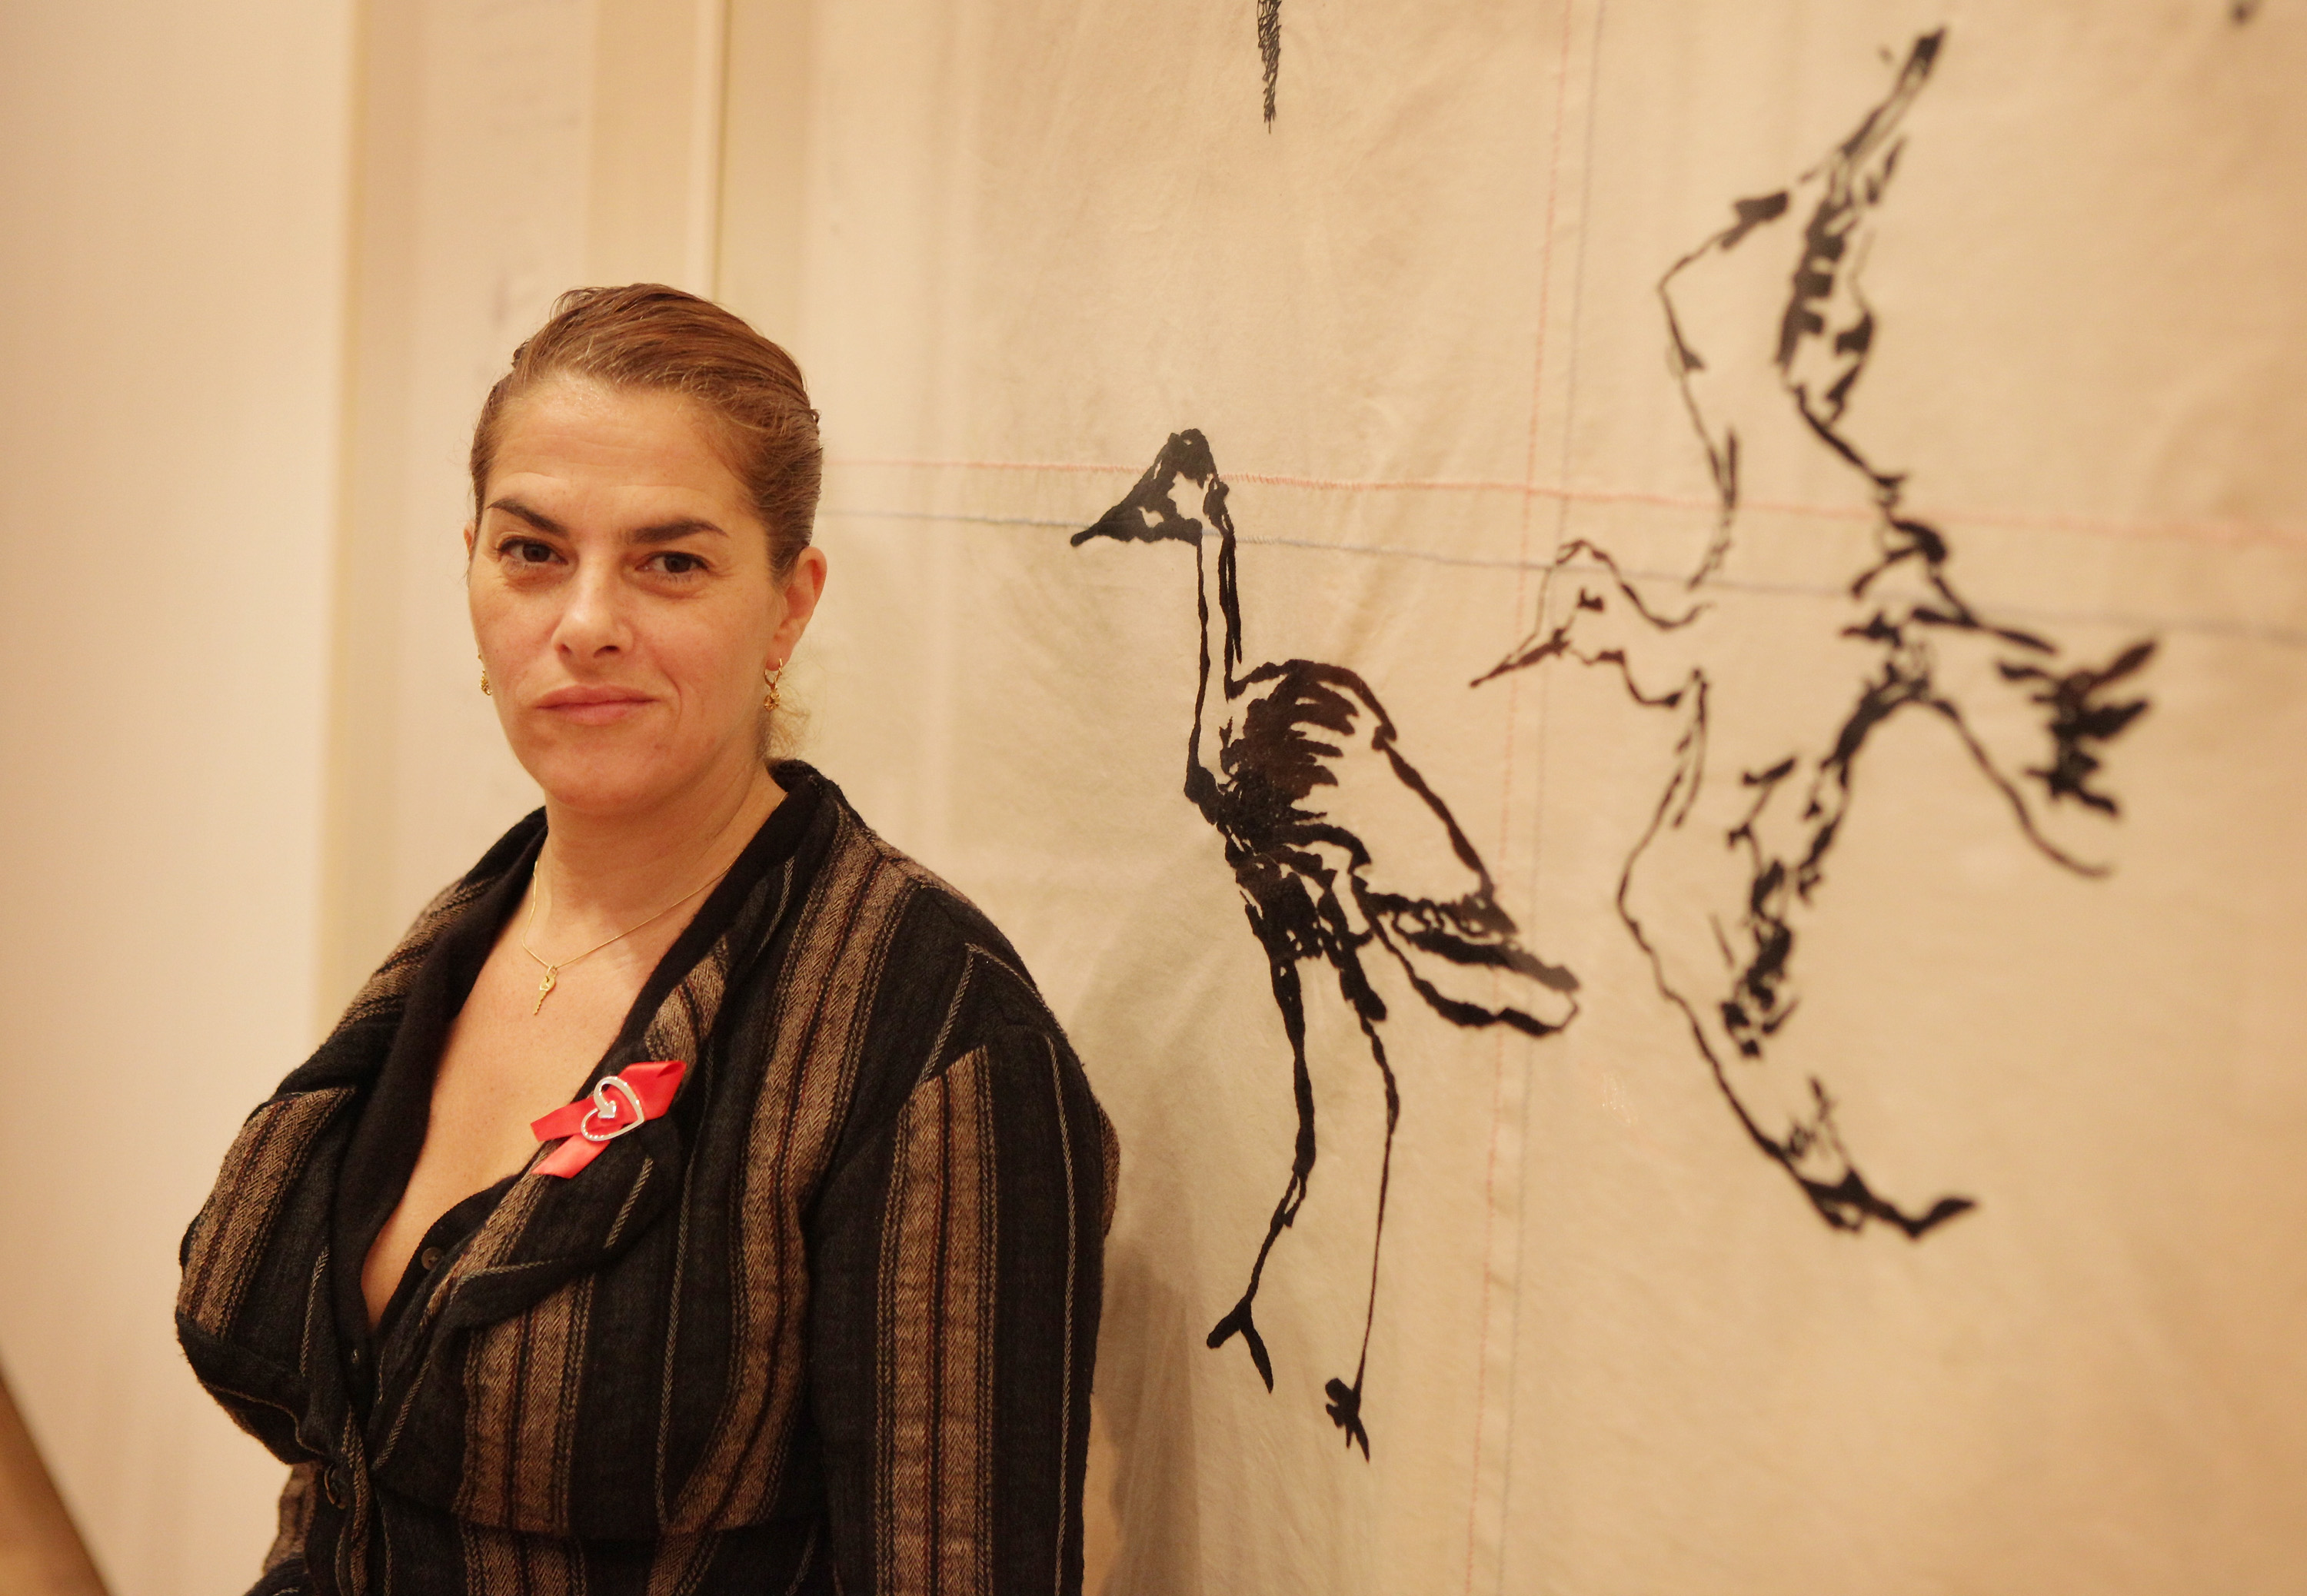 Artist Tracey Emin stands in front of her new painting entitled 'Throw Yourself at Anyone, 2009' at the Royal Academy of Arts 'Earth: Art of a Changing World' exhibition